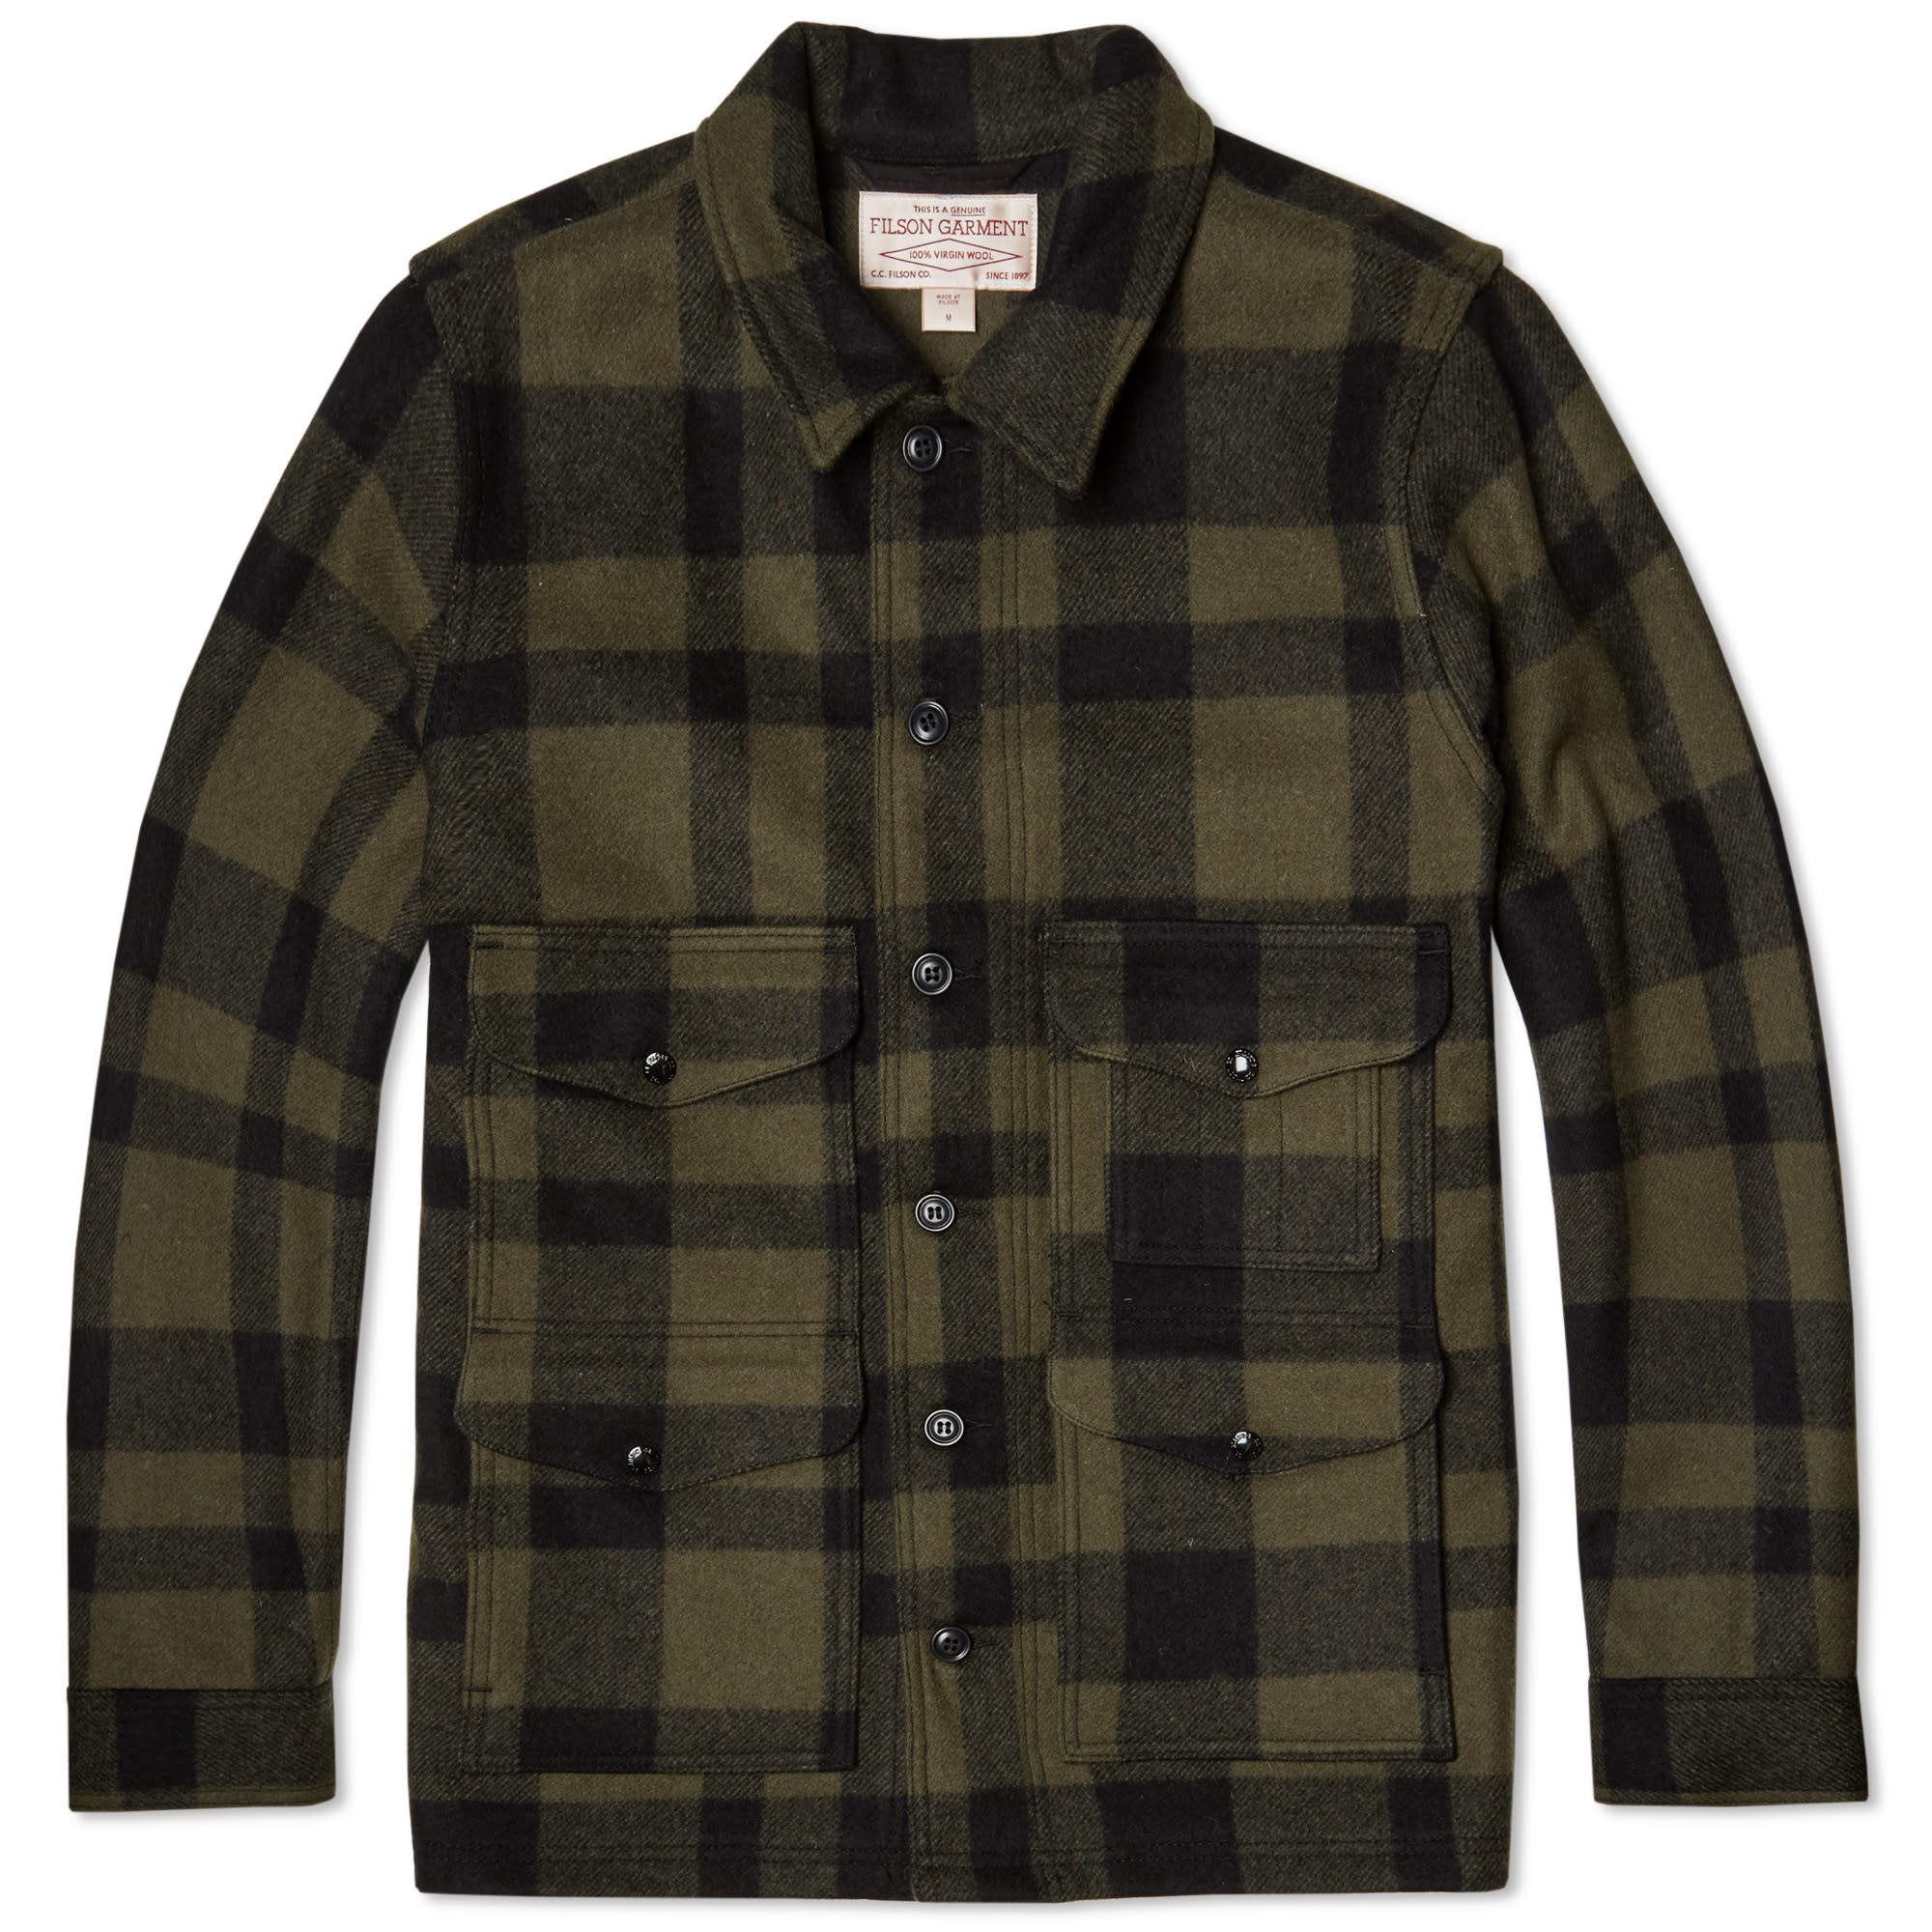 Filson single mackinaw cruiser